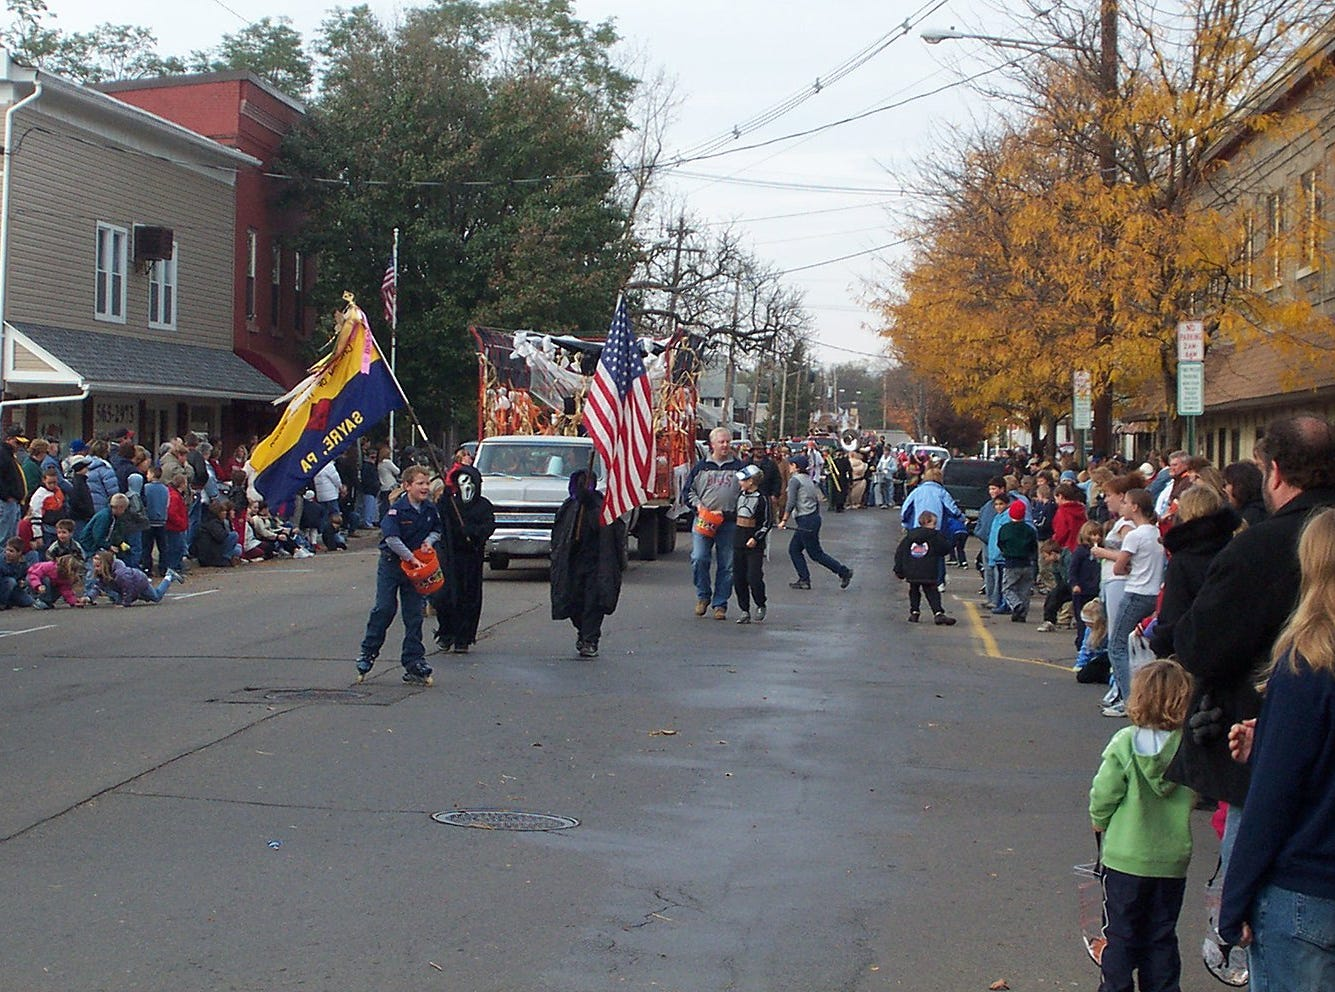 2003: Marchers toss candy to the large crowd gathered for last Saturday's 47th annual Valley Halloween Parade in Waverly. All three Valley high school marching bands participated, as well as many community groups and organizations, including, at left, a group from Epiphany School in Sayre.